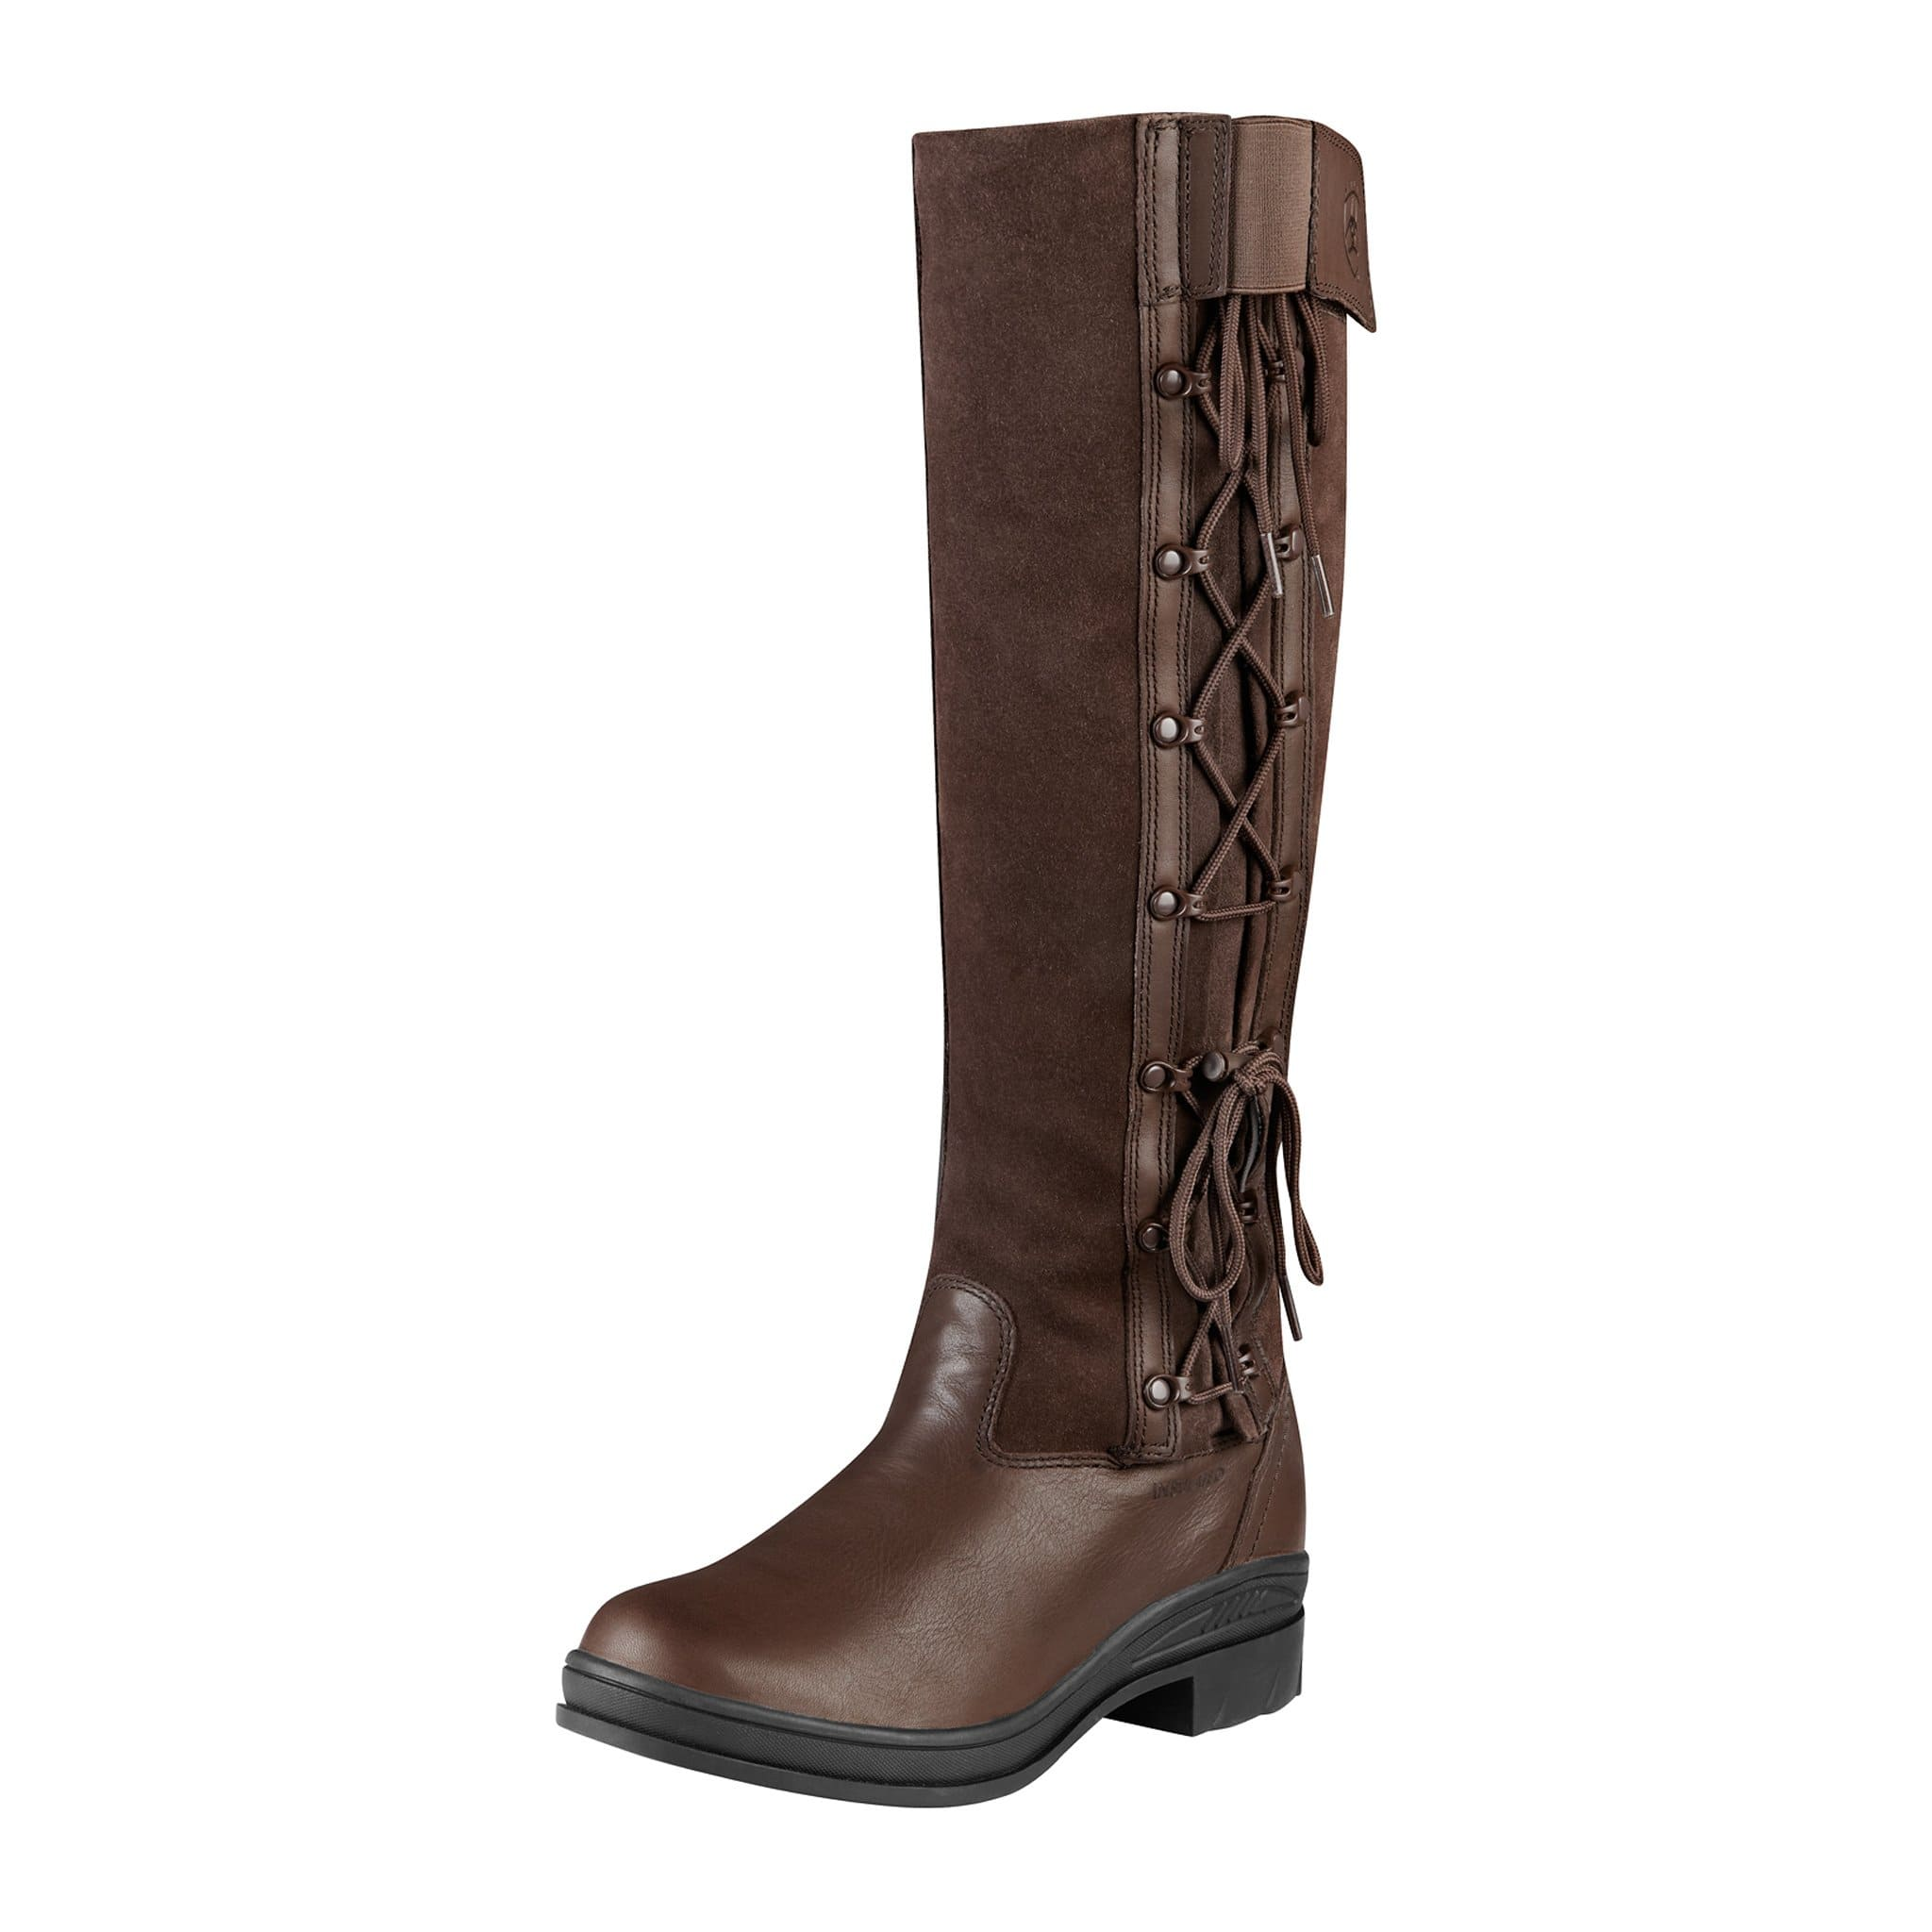 10008702 Ariat Grasmere H2O Boots